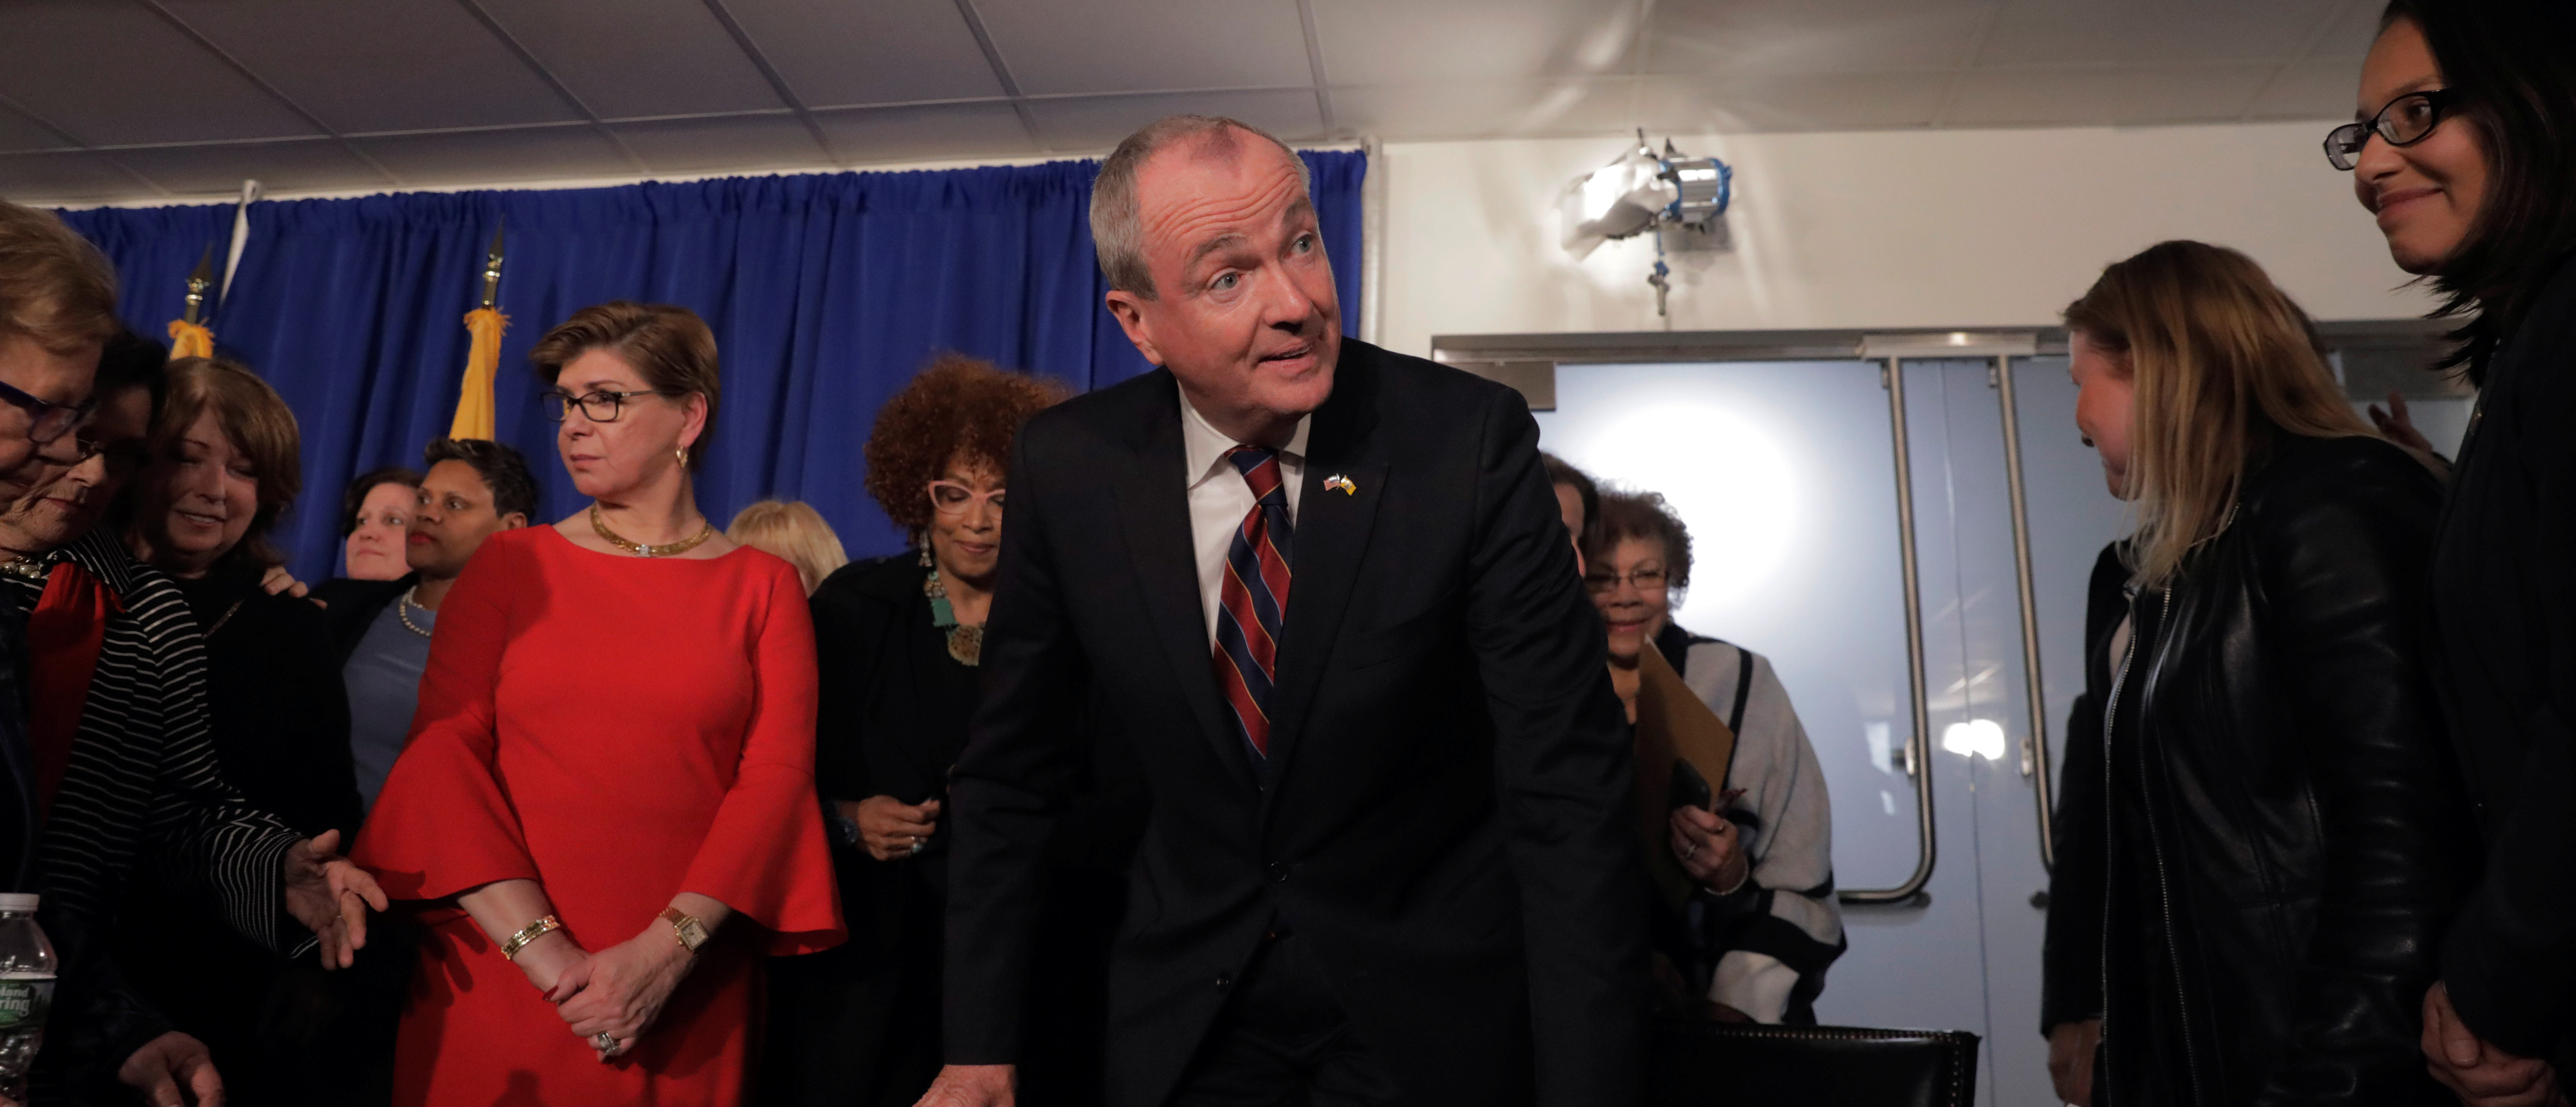 New Jersey Governor Phil Murphy takes part in a signing ceremony for his first executive order the day he took his oath of office in Trenton, New Jersey, U.S., January 16, 2018. REUTERS/Lucas Jackson - RC156B8E6CC0